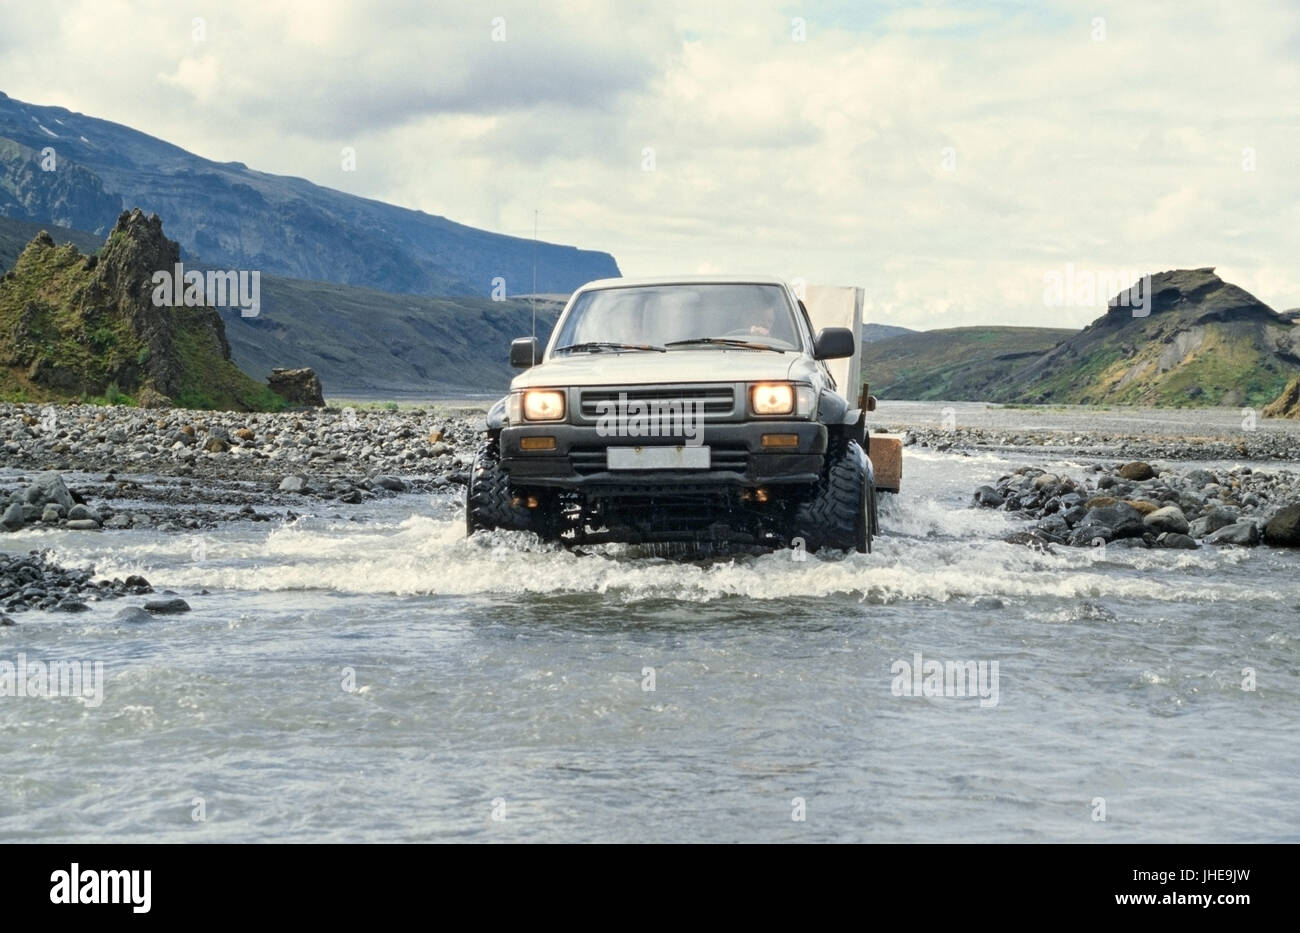 Car pulling trailer and crossing river in Iceland - Stock Image